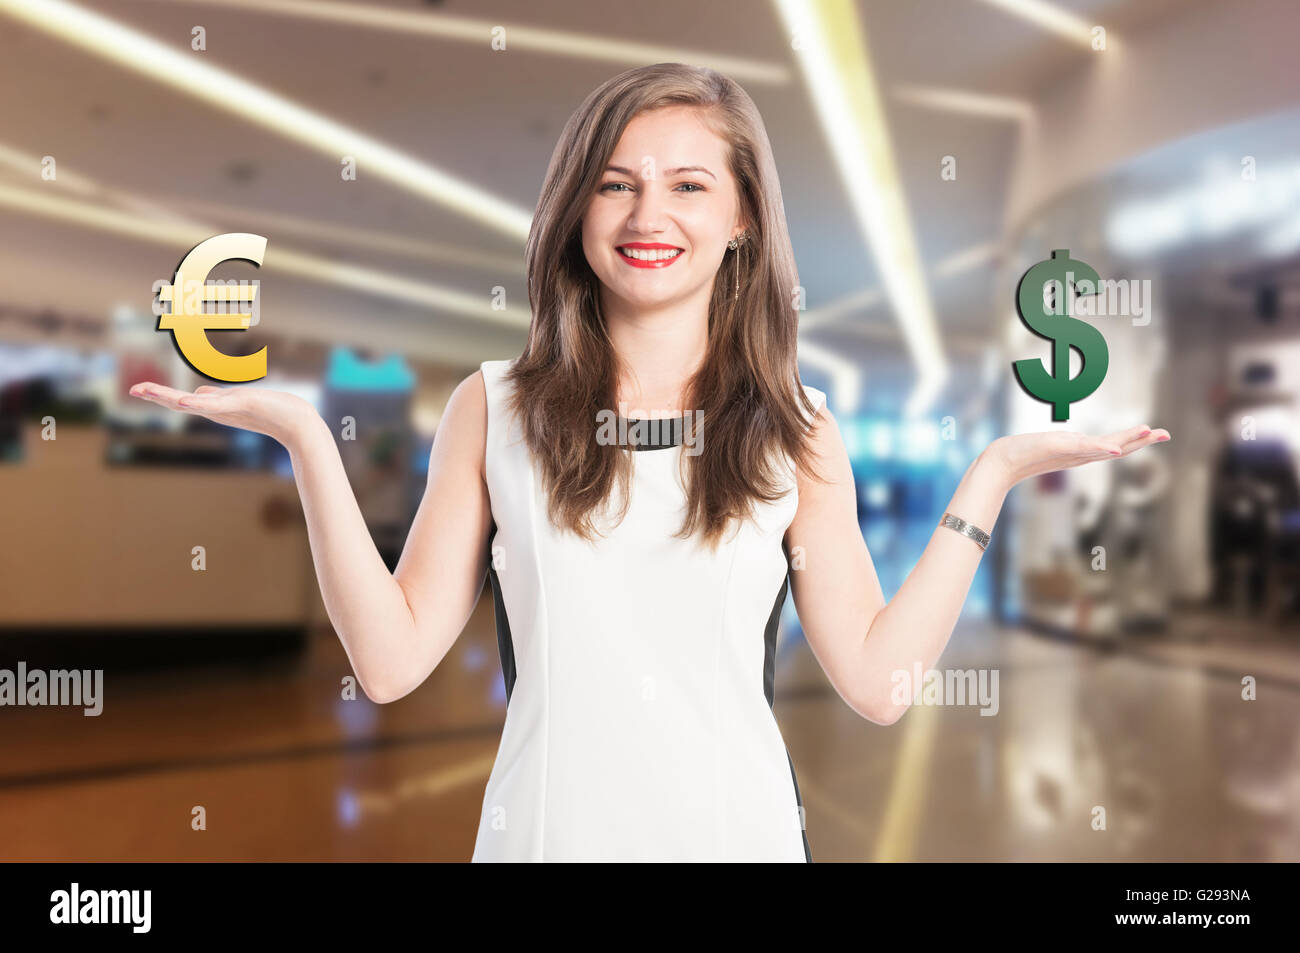 Woman holding and scaling euro and dollar sign with fade mall background - Stock Image